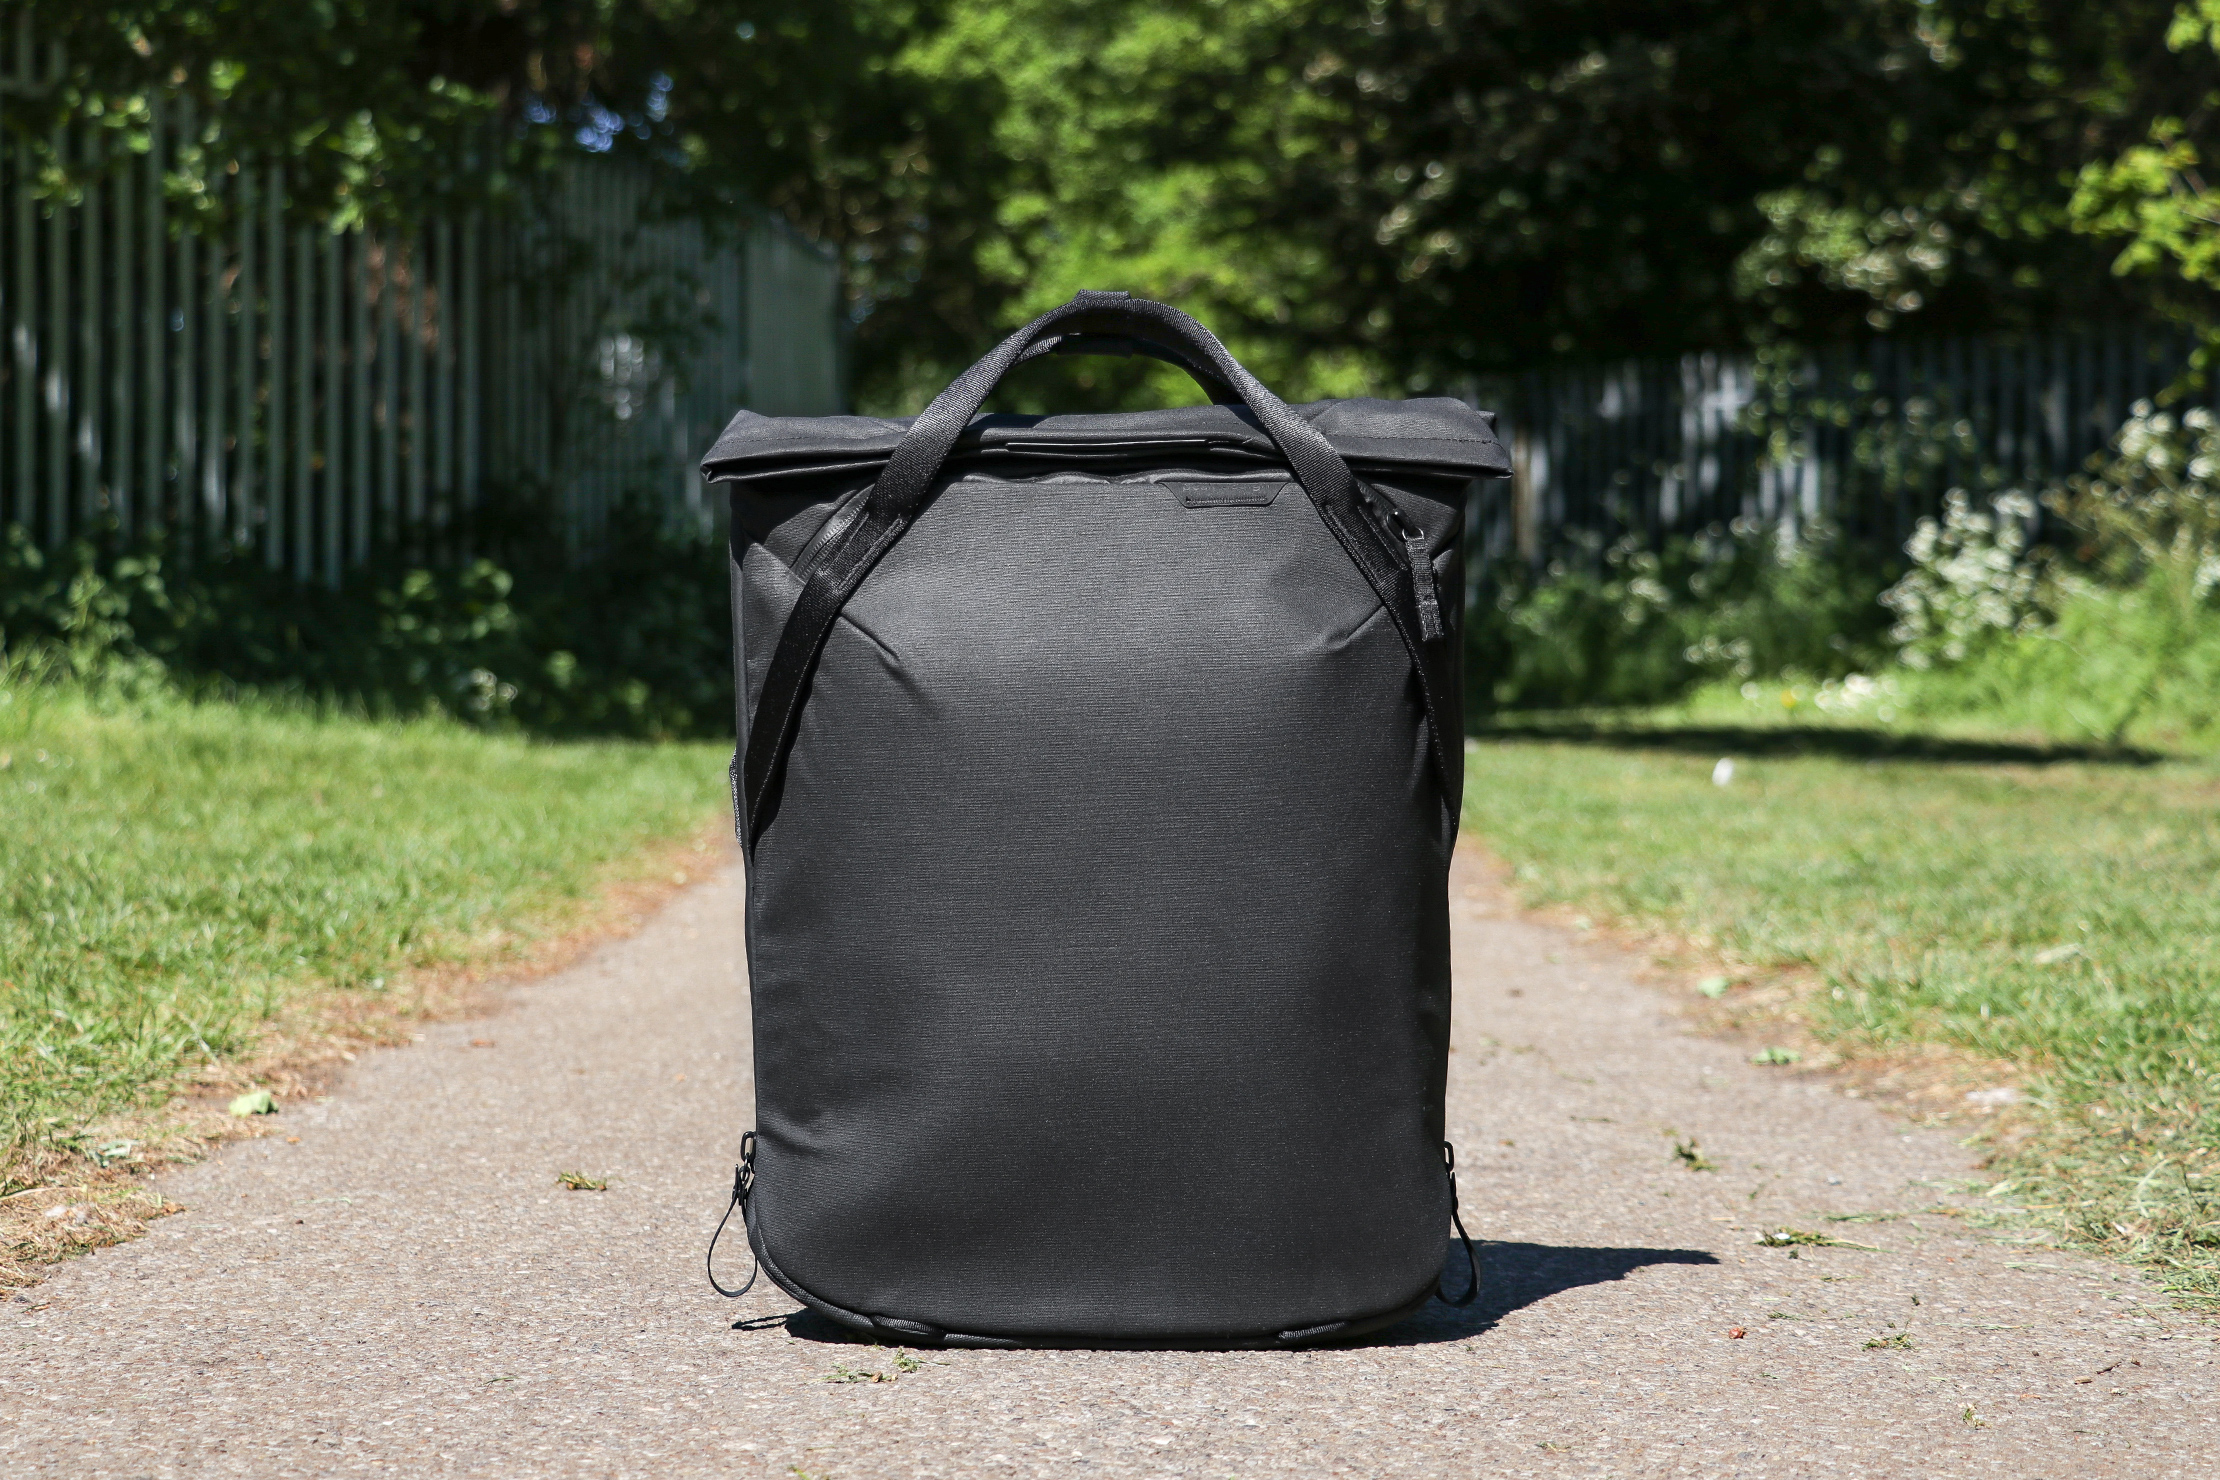 Peak Design Everyday Totepack V2 Standing Up On Its Own